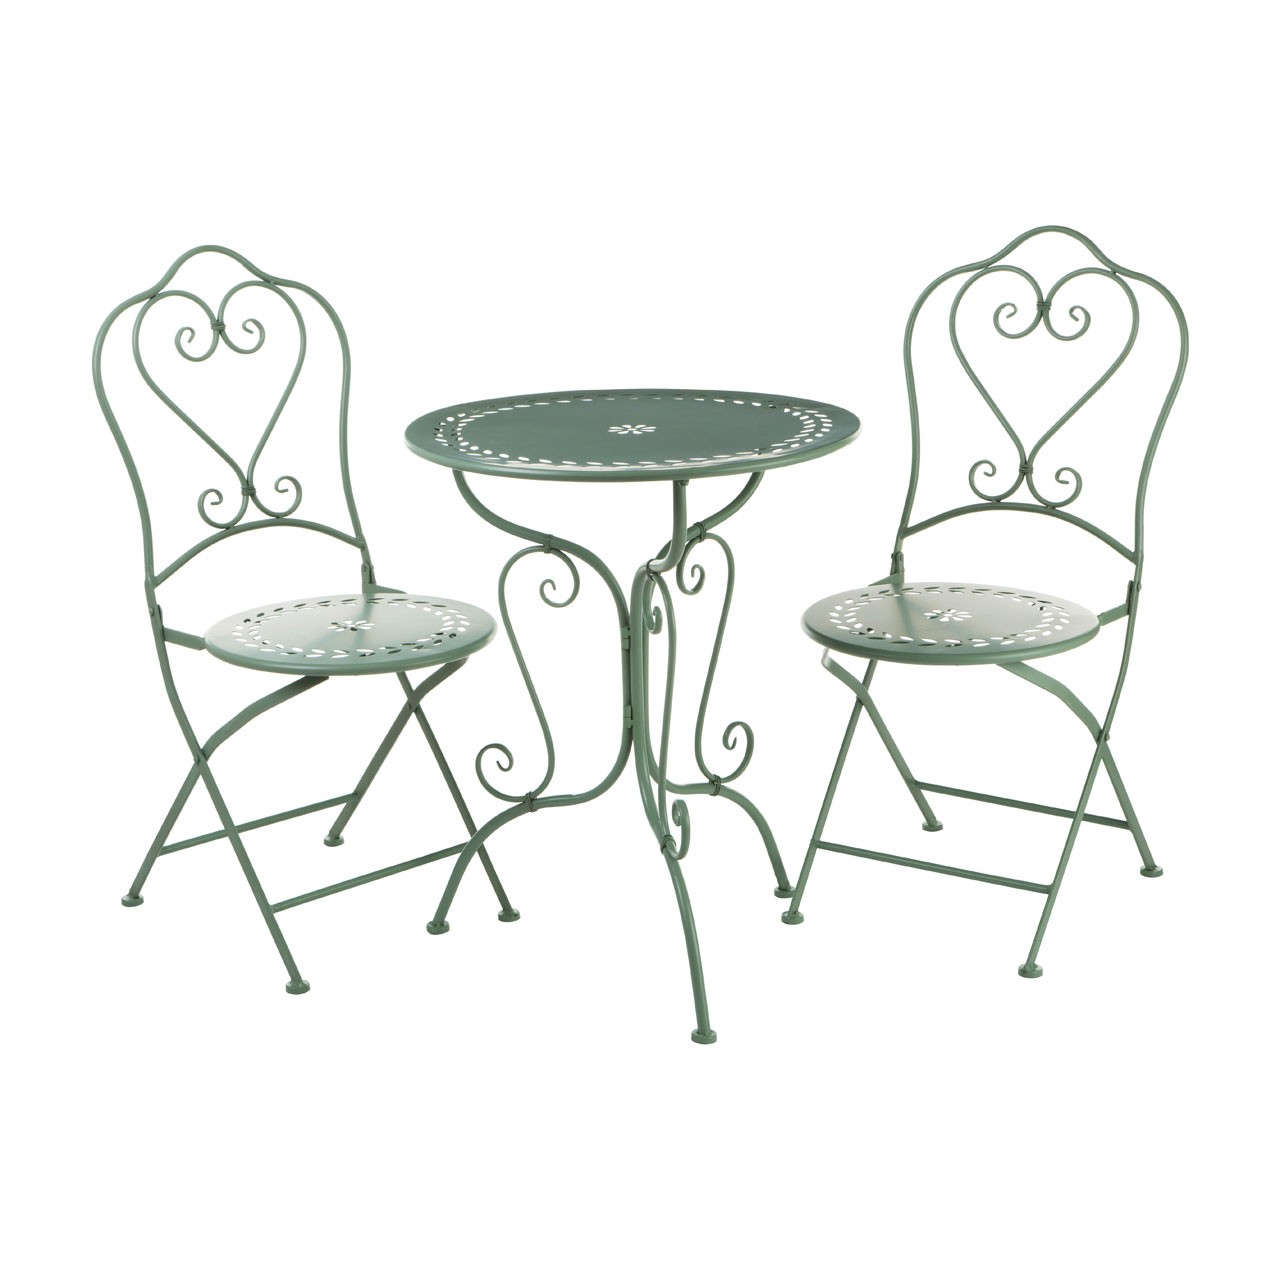 Finchwood Jardin 3pc Table Set -Green